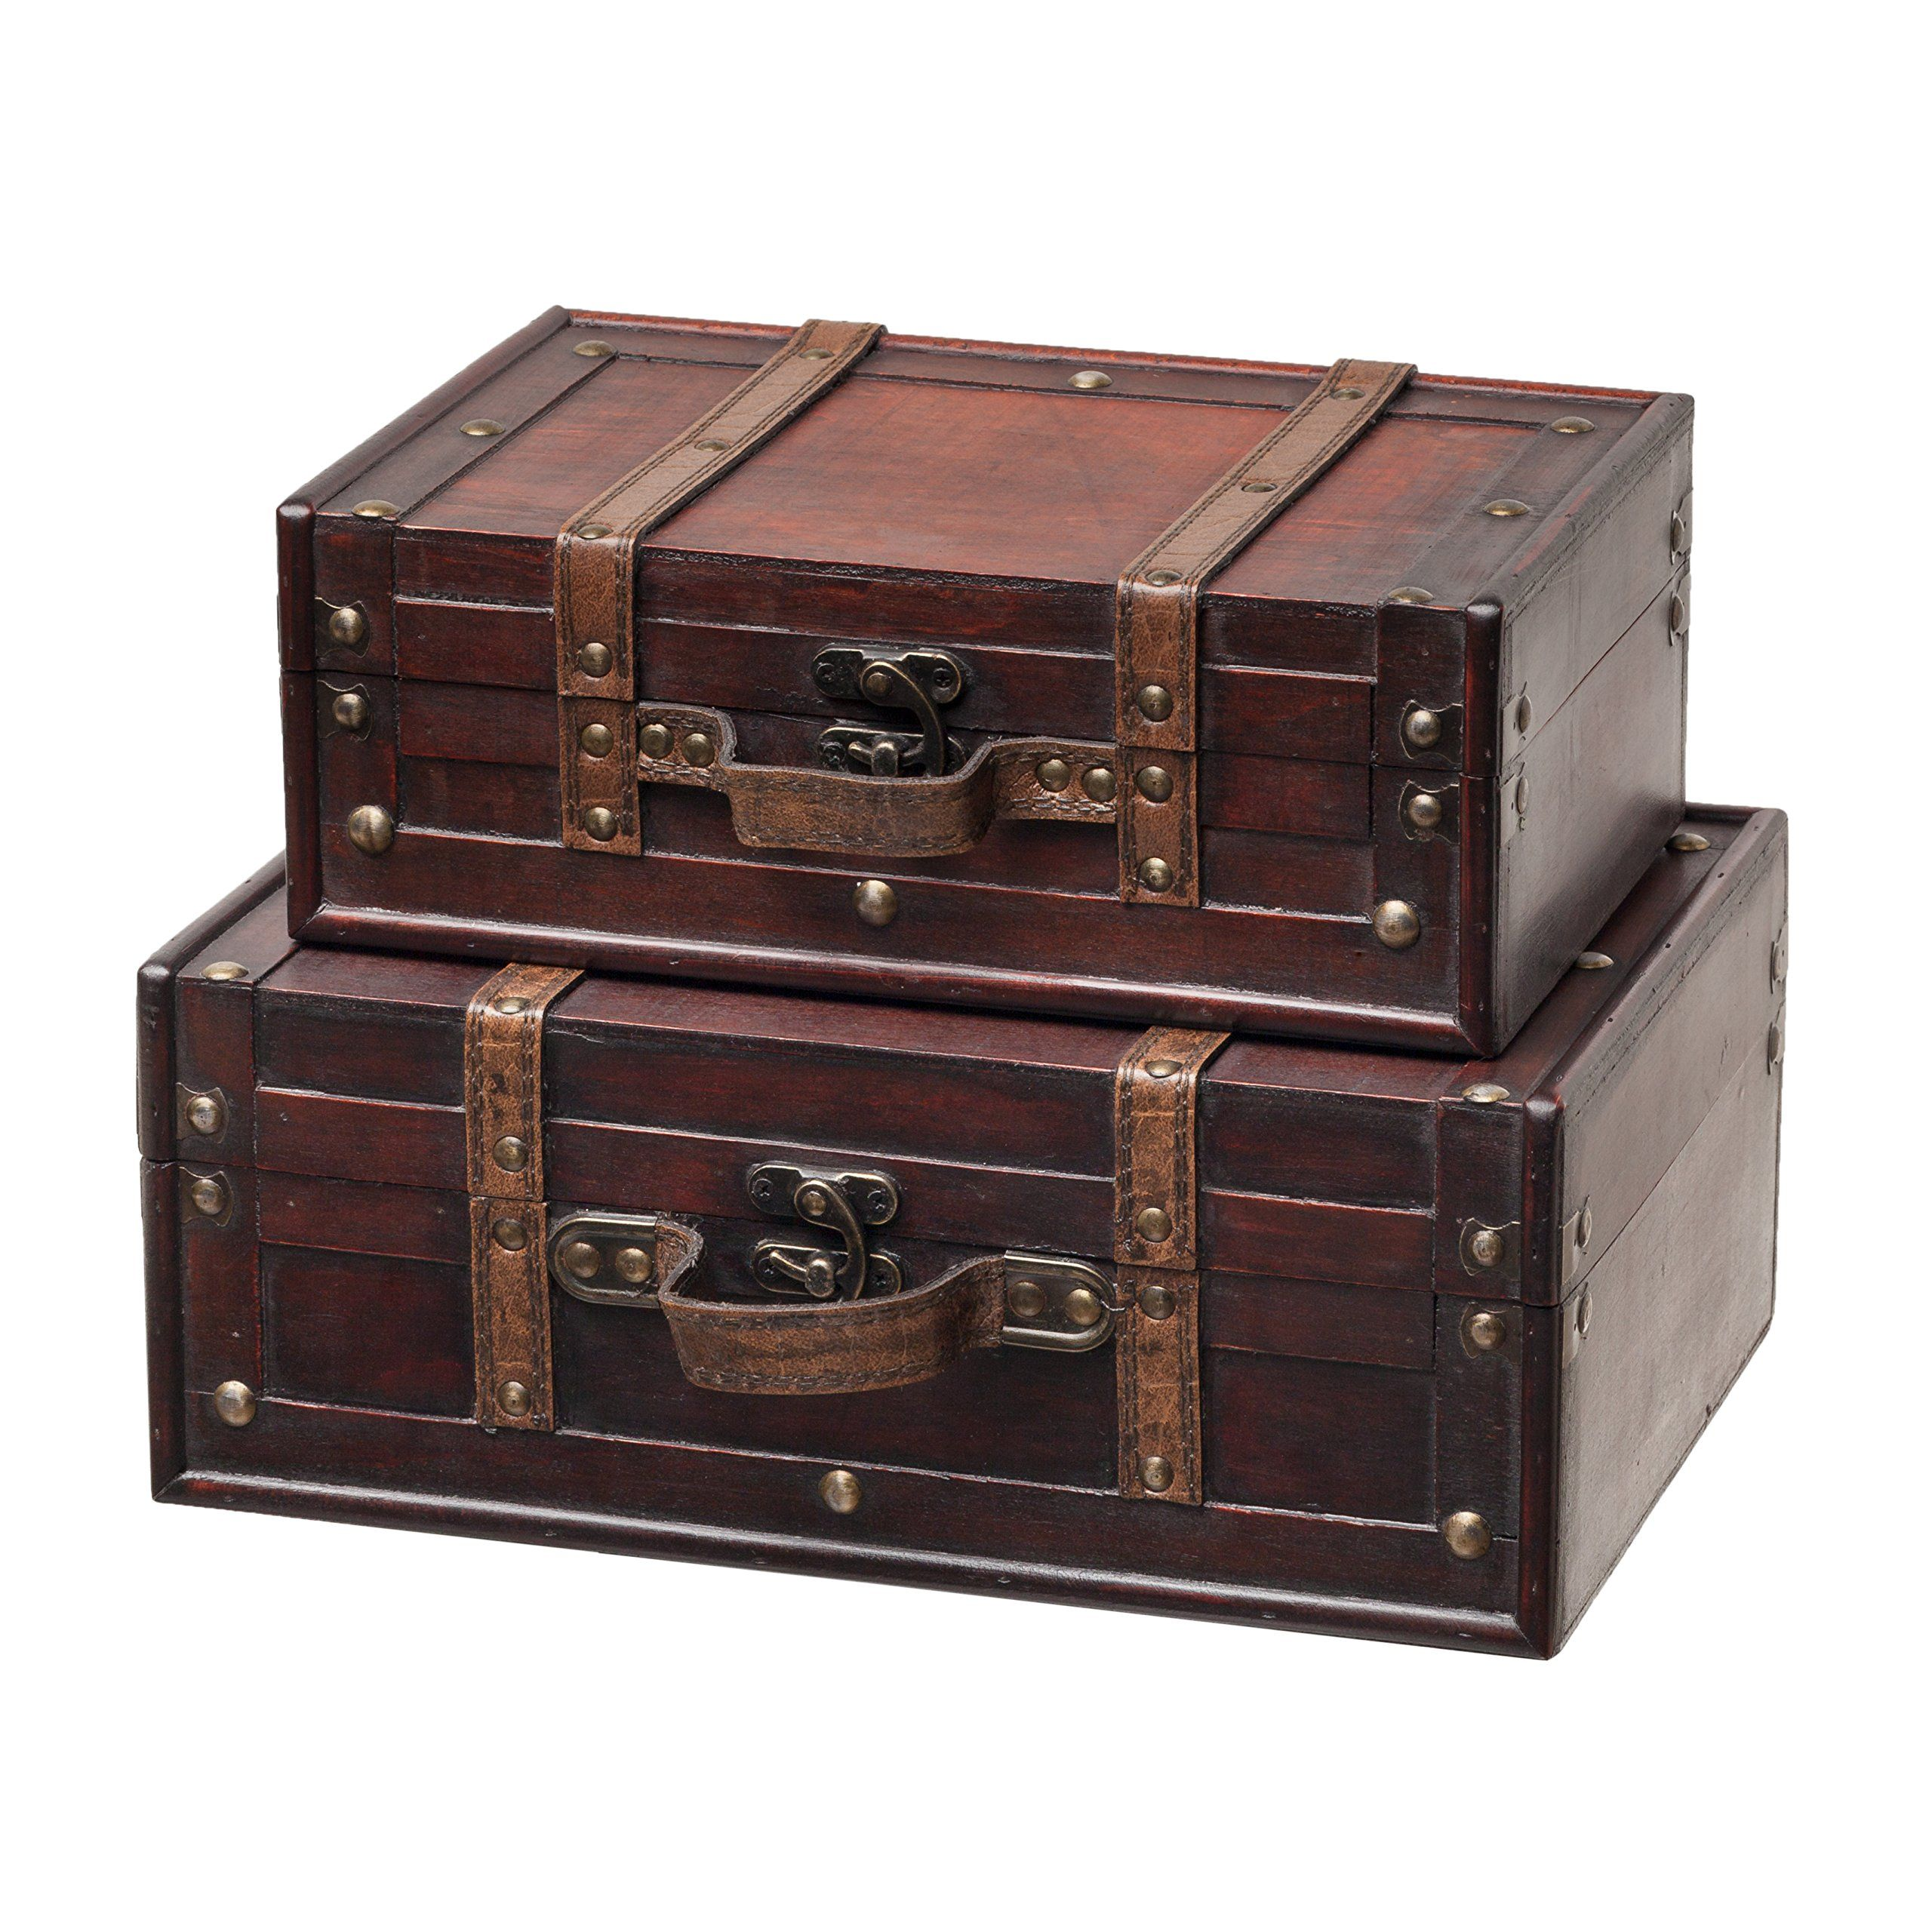 SLPR Decorative Suitcase with Straps Set of 2 Brown OldFashioned